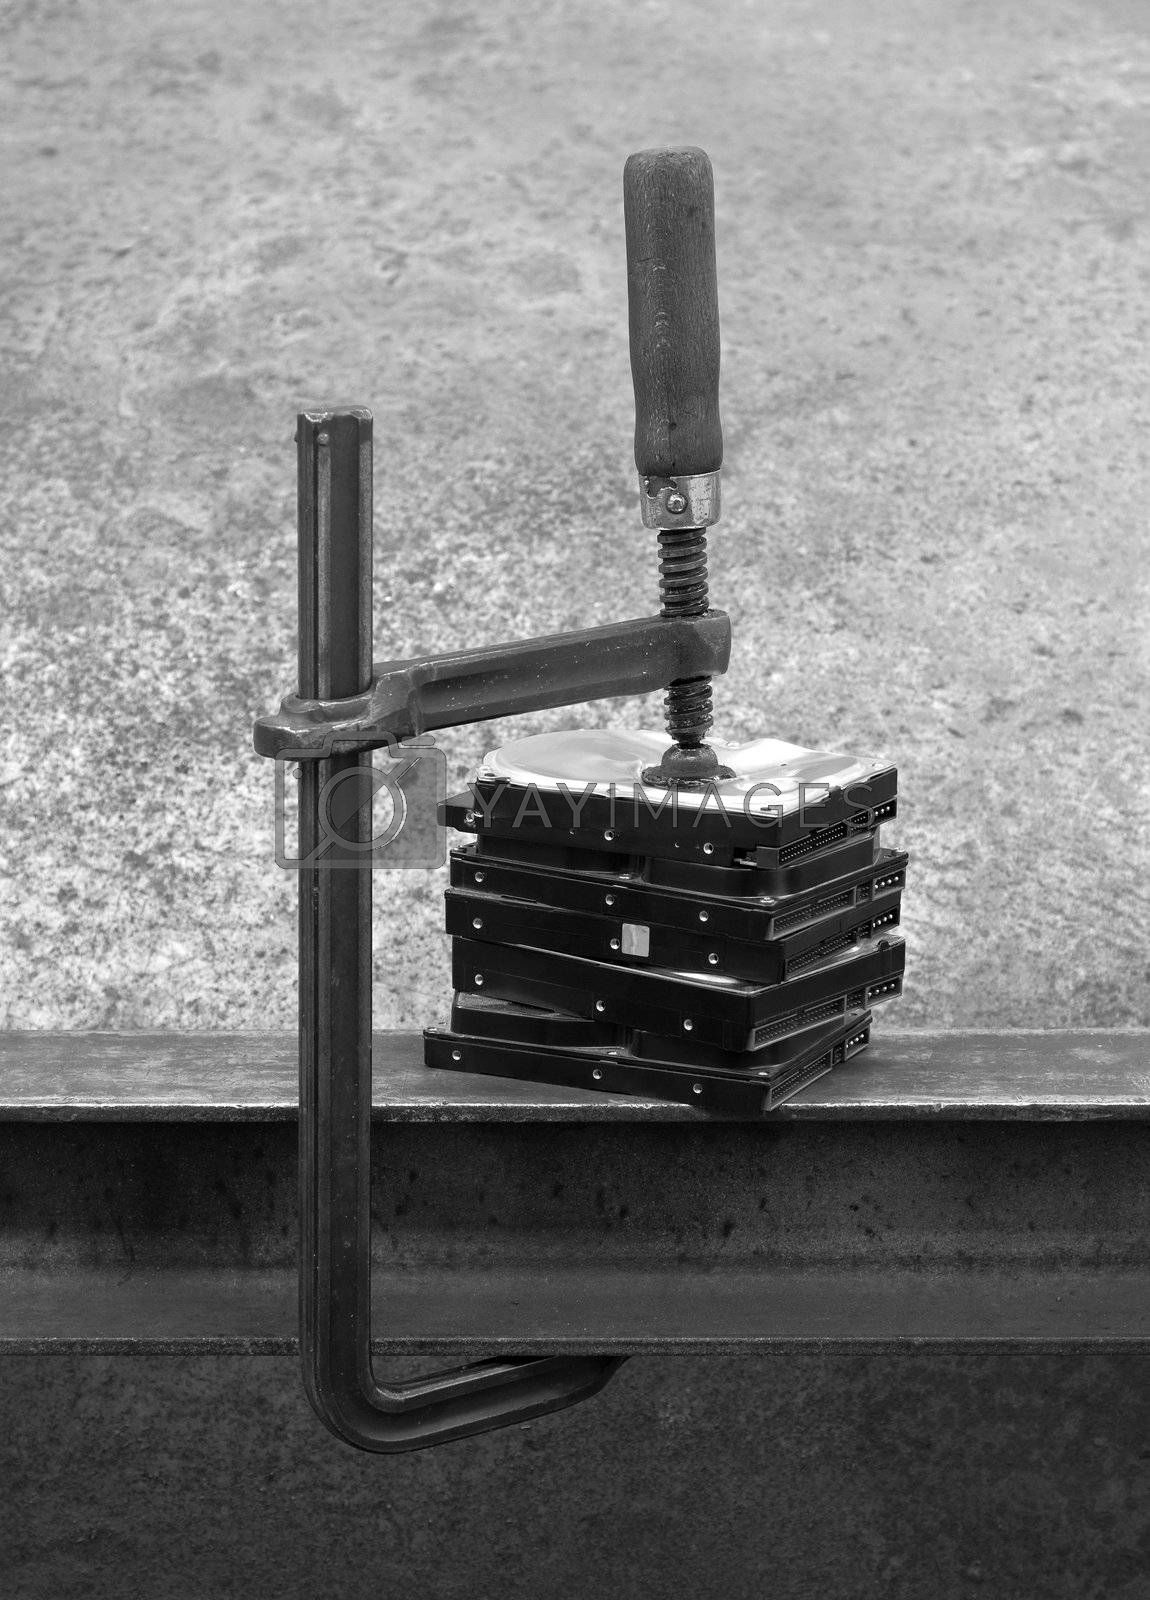 compressed stack of hard disks by clamp. black and white shot